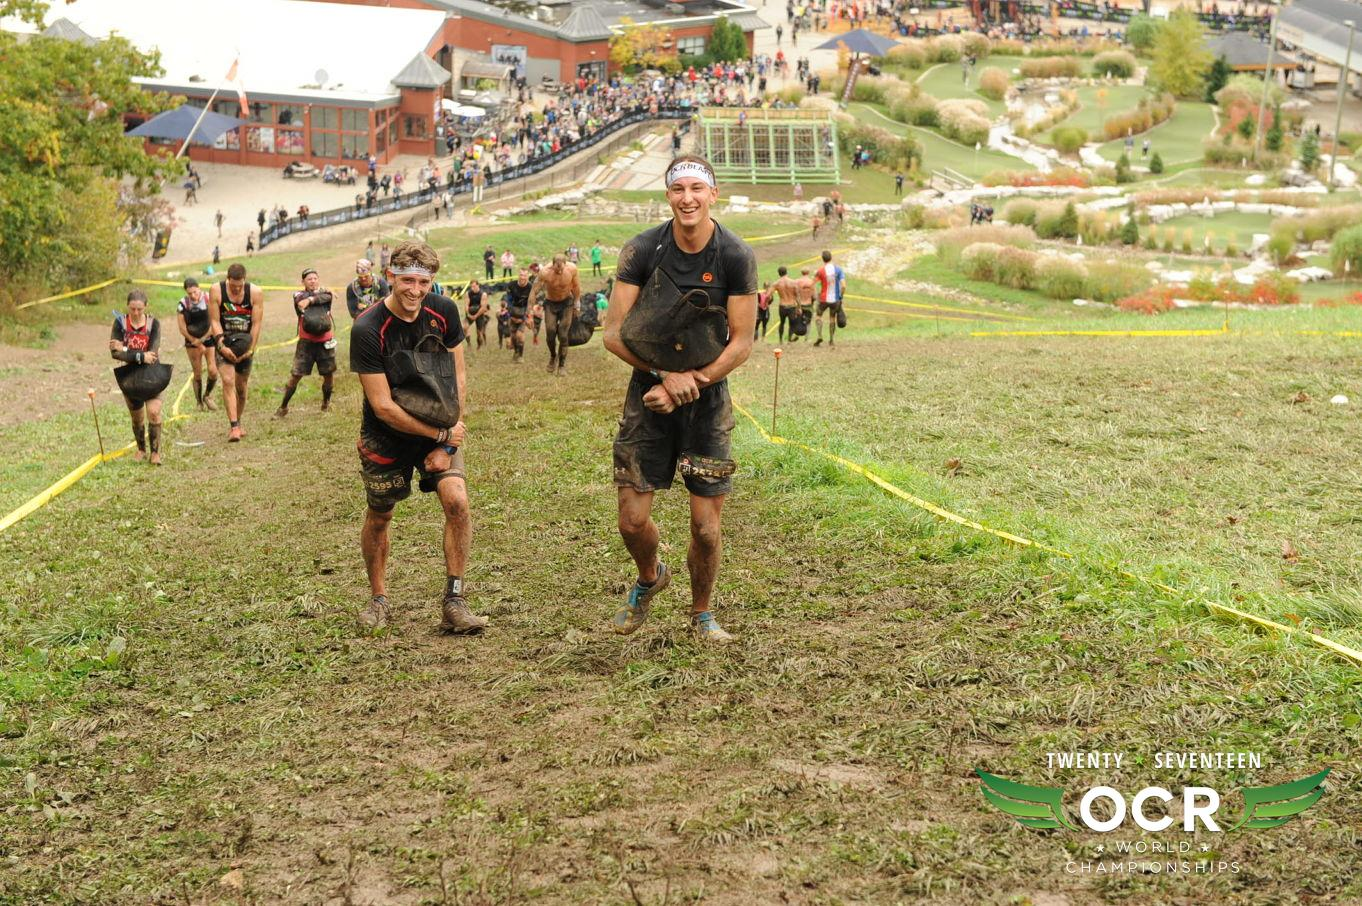 Here's Kirk and I carrying a sandbag at the same time, over an hour into the race (and laughing about it).